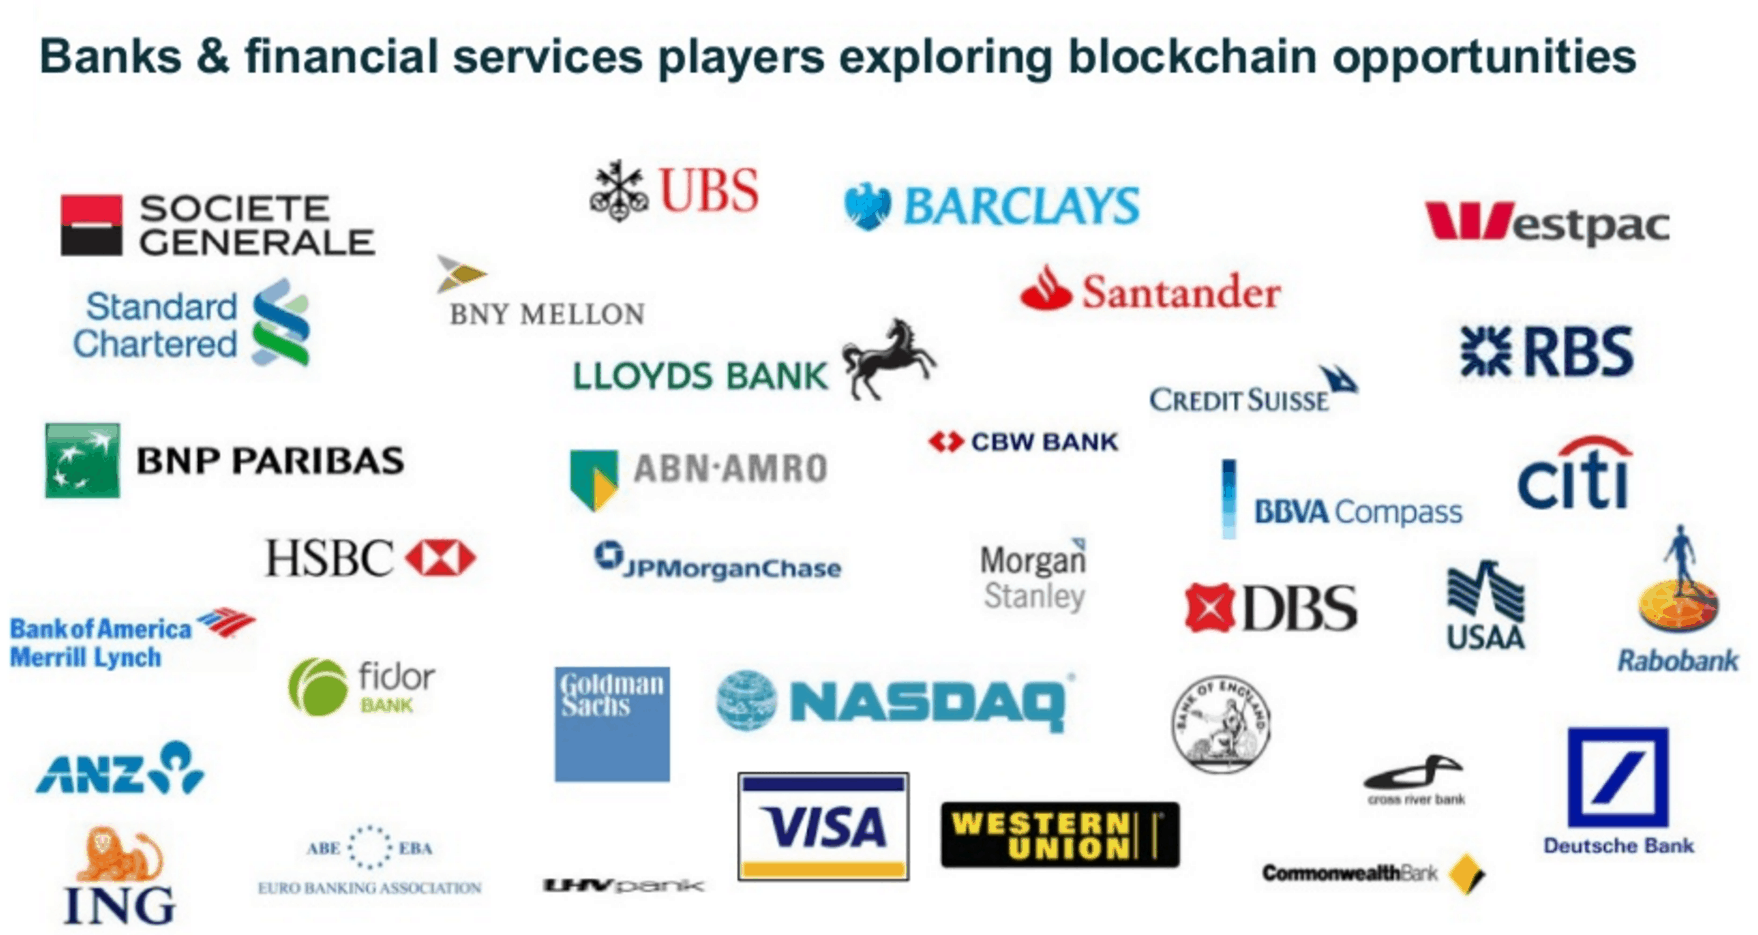 The list of banks who are exploring the benefits of the blockchain